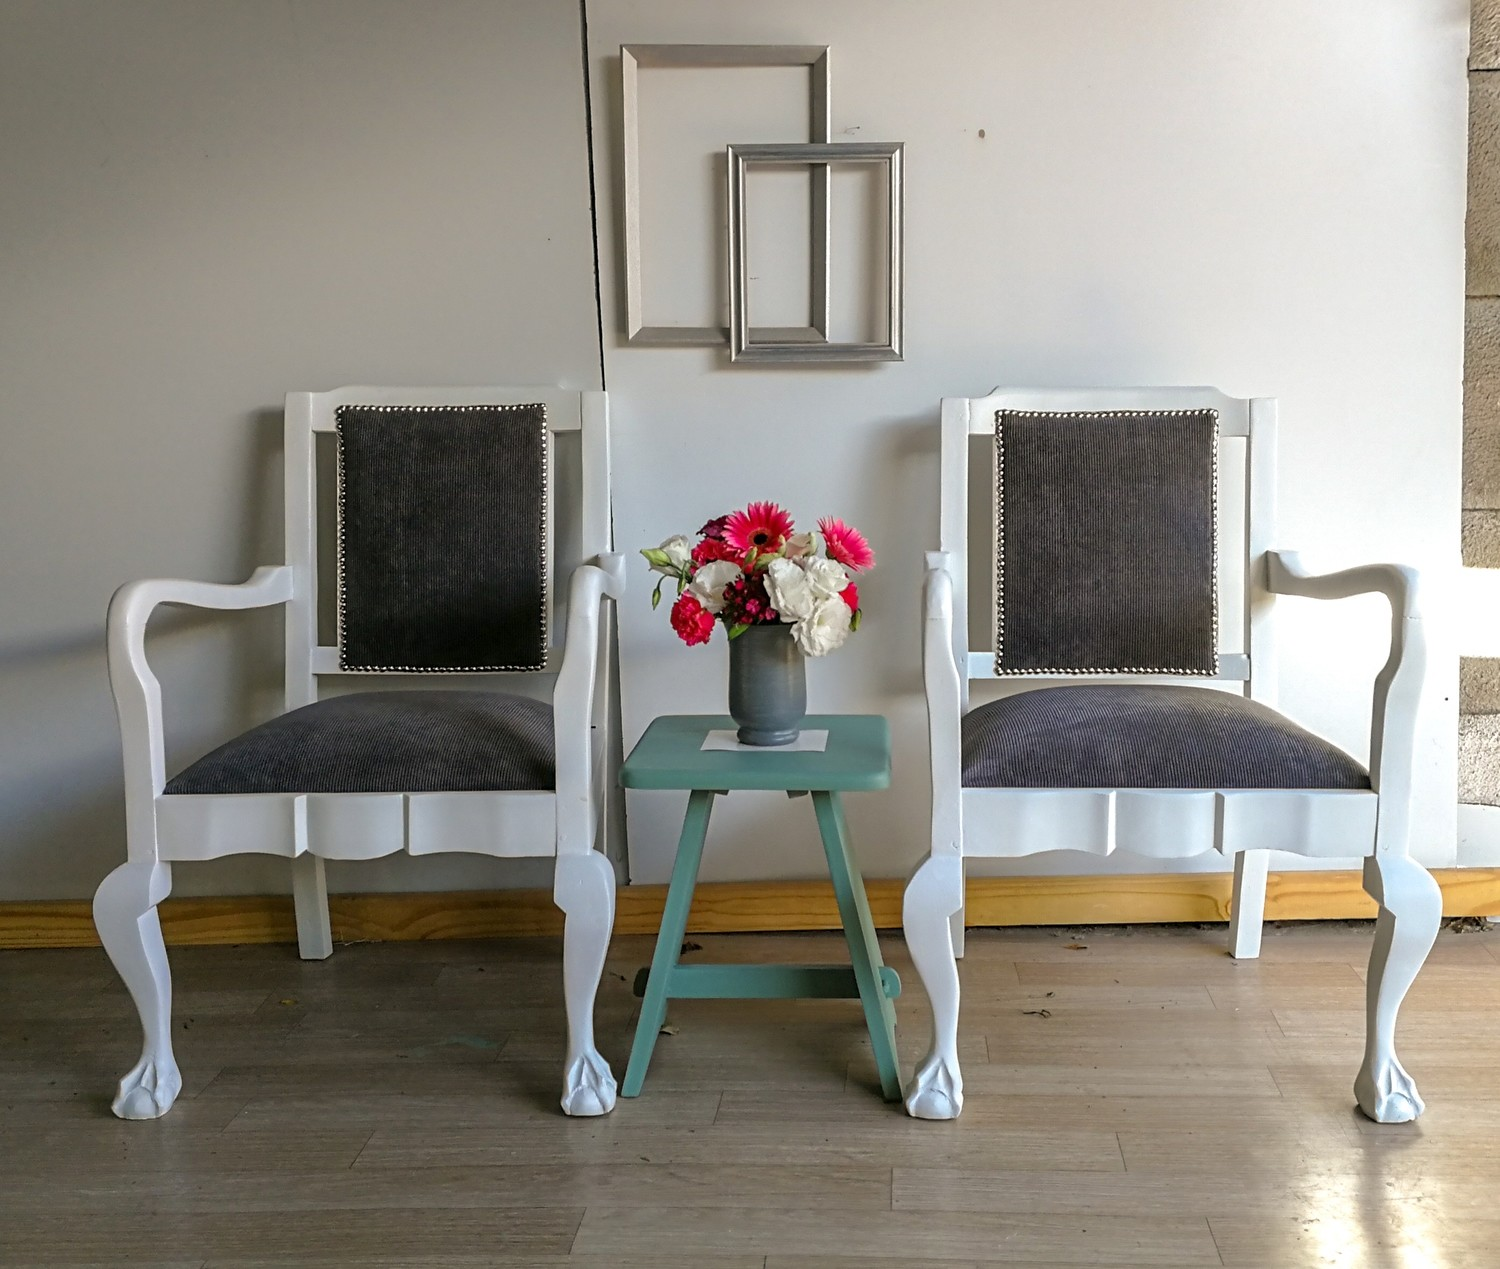 Armchairs - white and grey